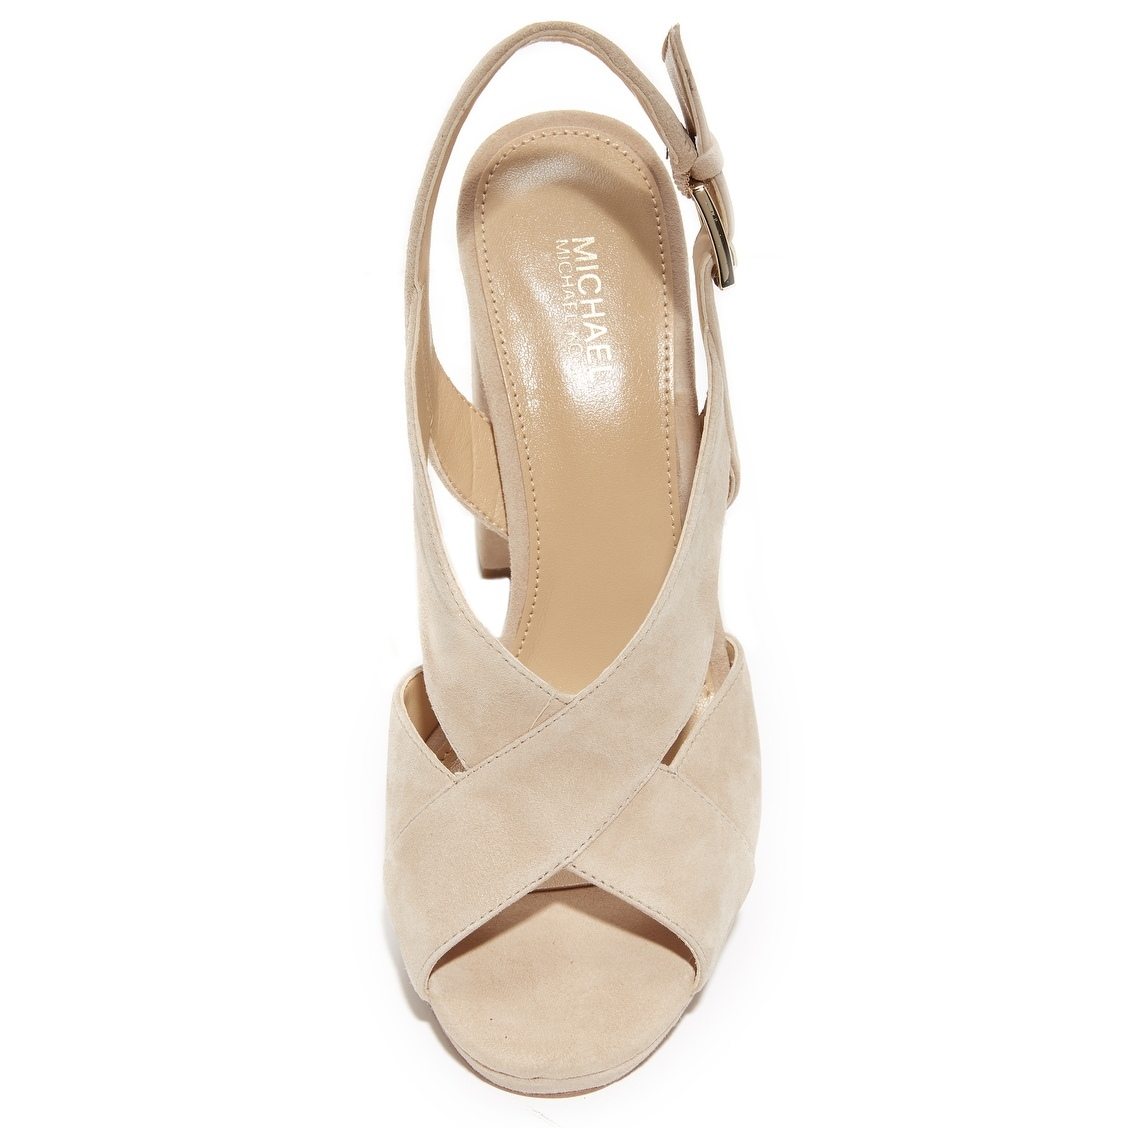 b357a59b14f Shop Michael Michael Kors Womens Becky Platform Leather Peep Toe Casual  Slingback ... - Free Shipping Today - Overstock - 24417599